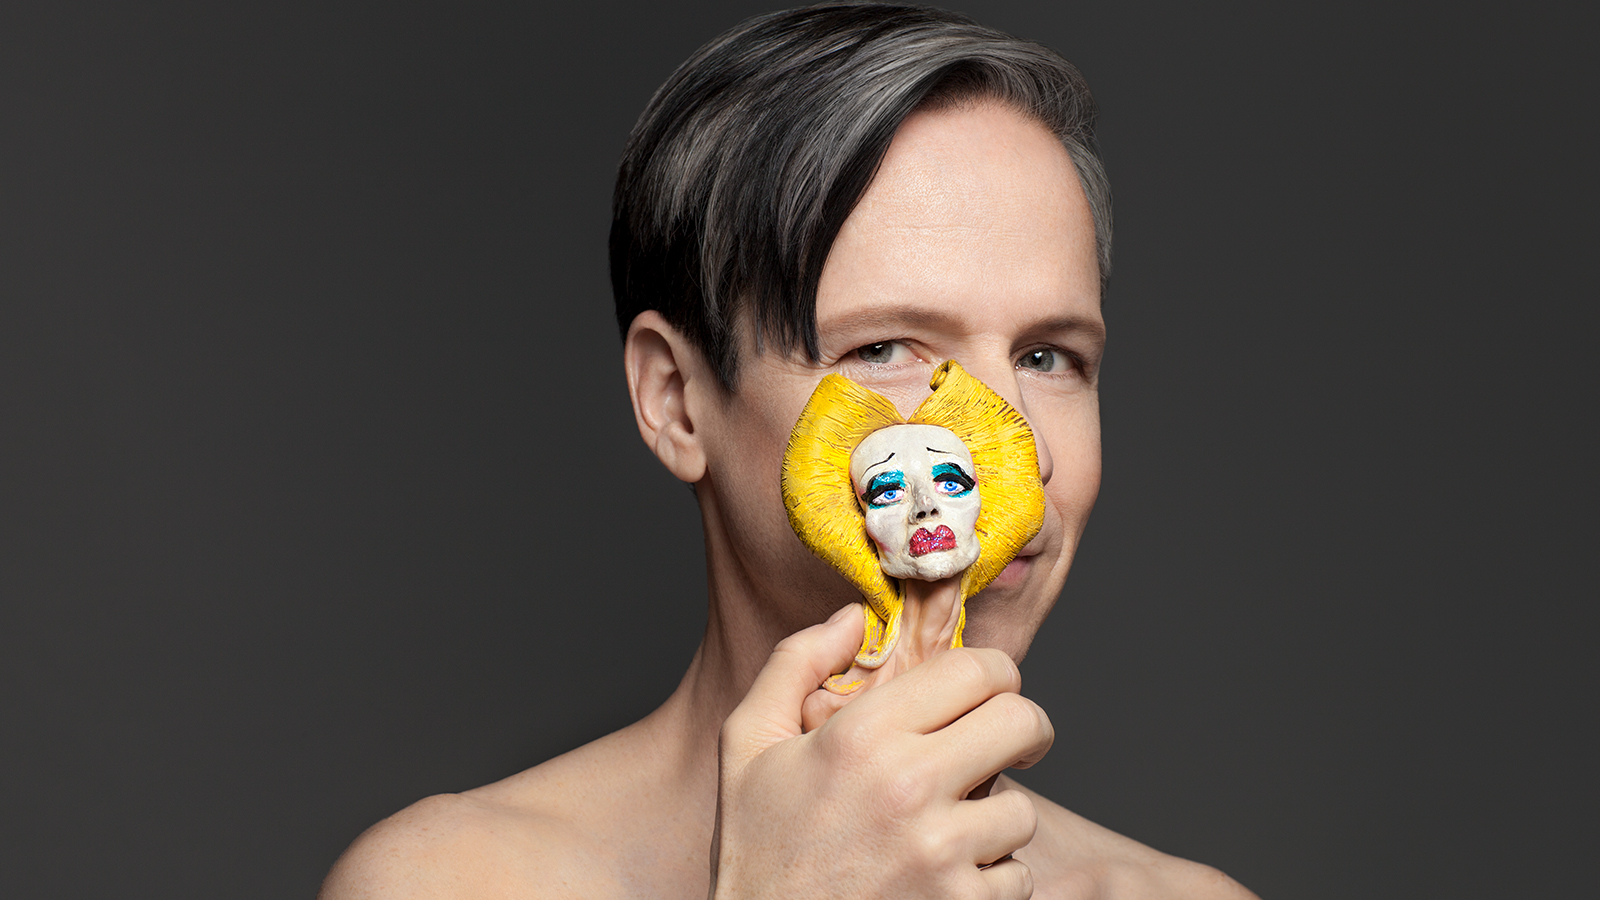 [John Cameron MitchellThe Origin of Love: The Songs and Stories of Hedwig] Photo by Matthew Placek